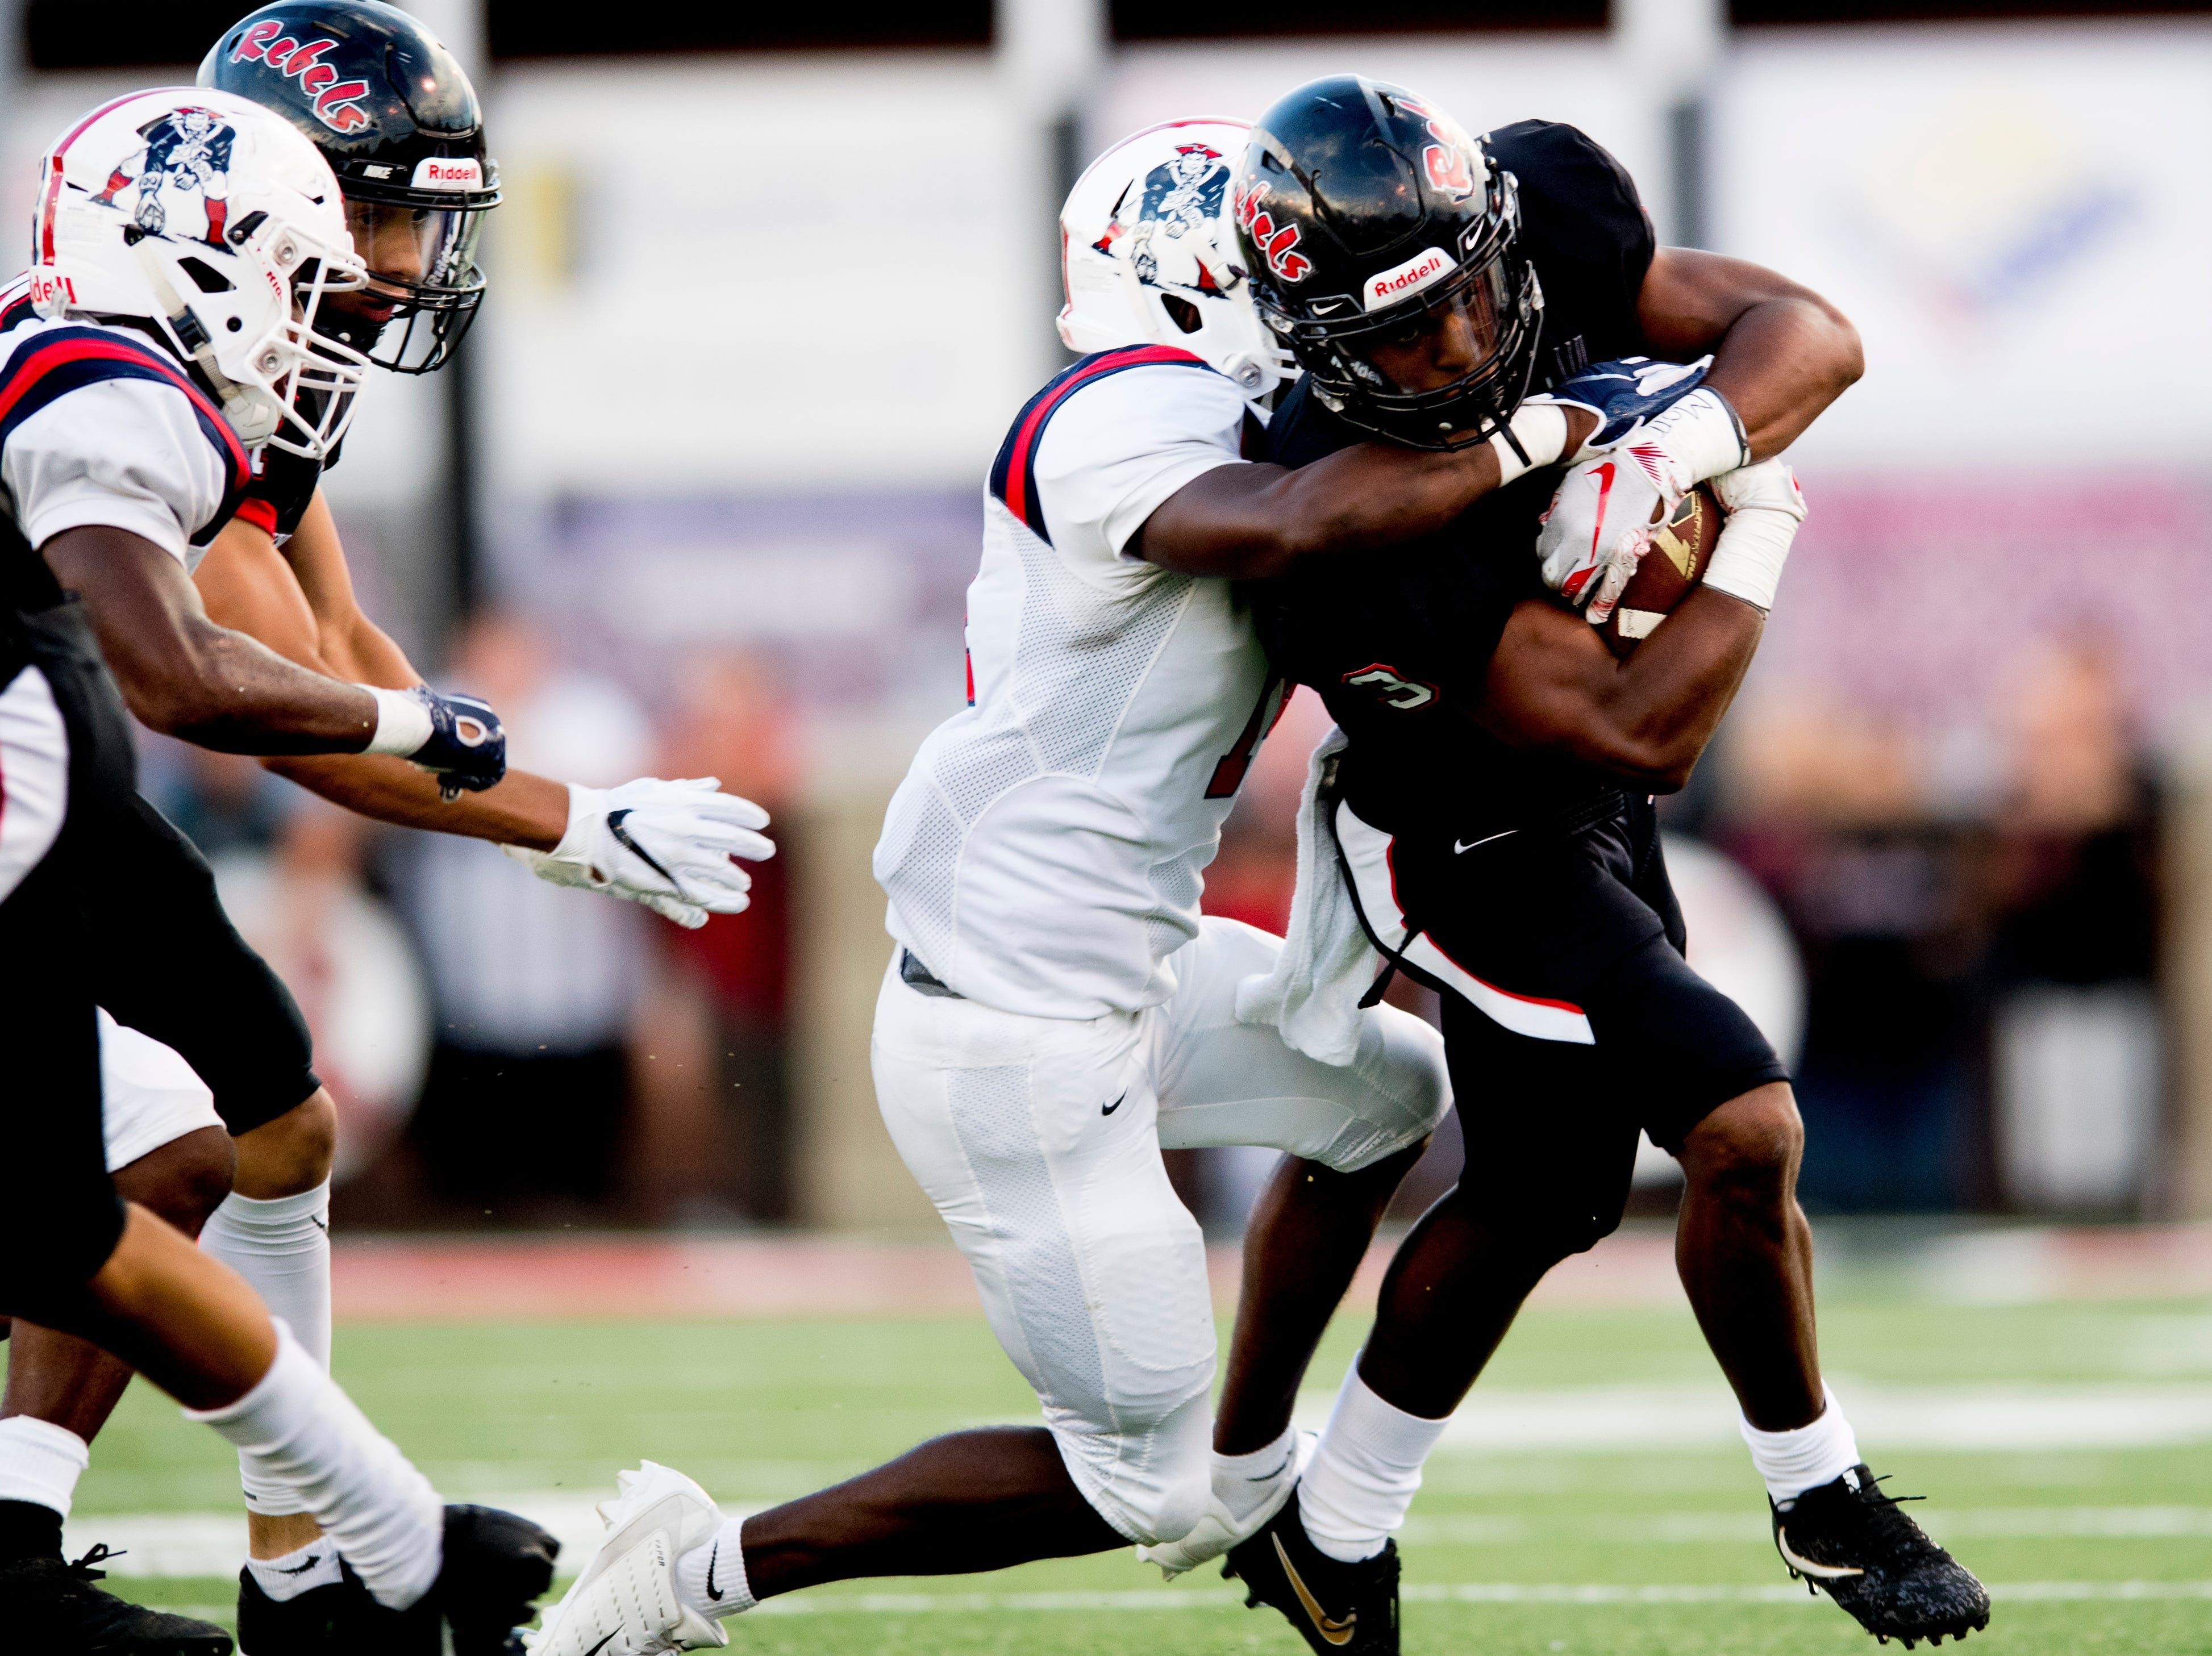 Maryville's A.J. Davis (3) is taken down by an Oakland player during a football game between Maryville and Oakland at Maryville High School in Maryville, Tennessee on Friday, August 24, 2018.